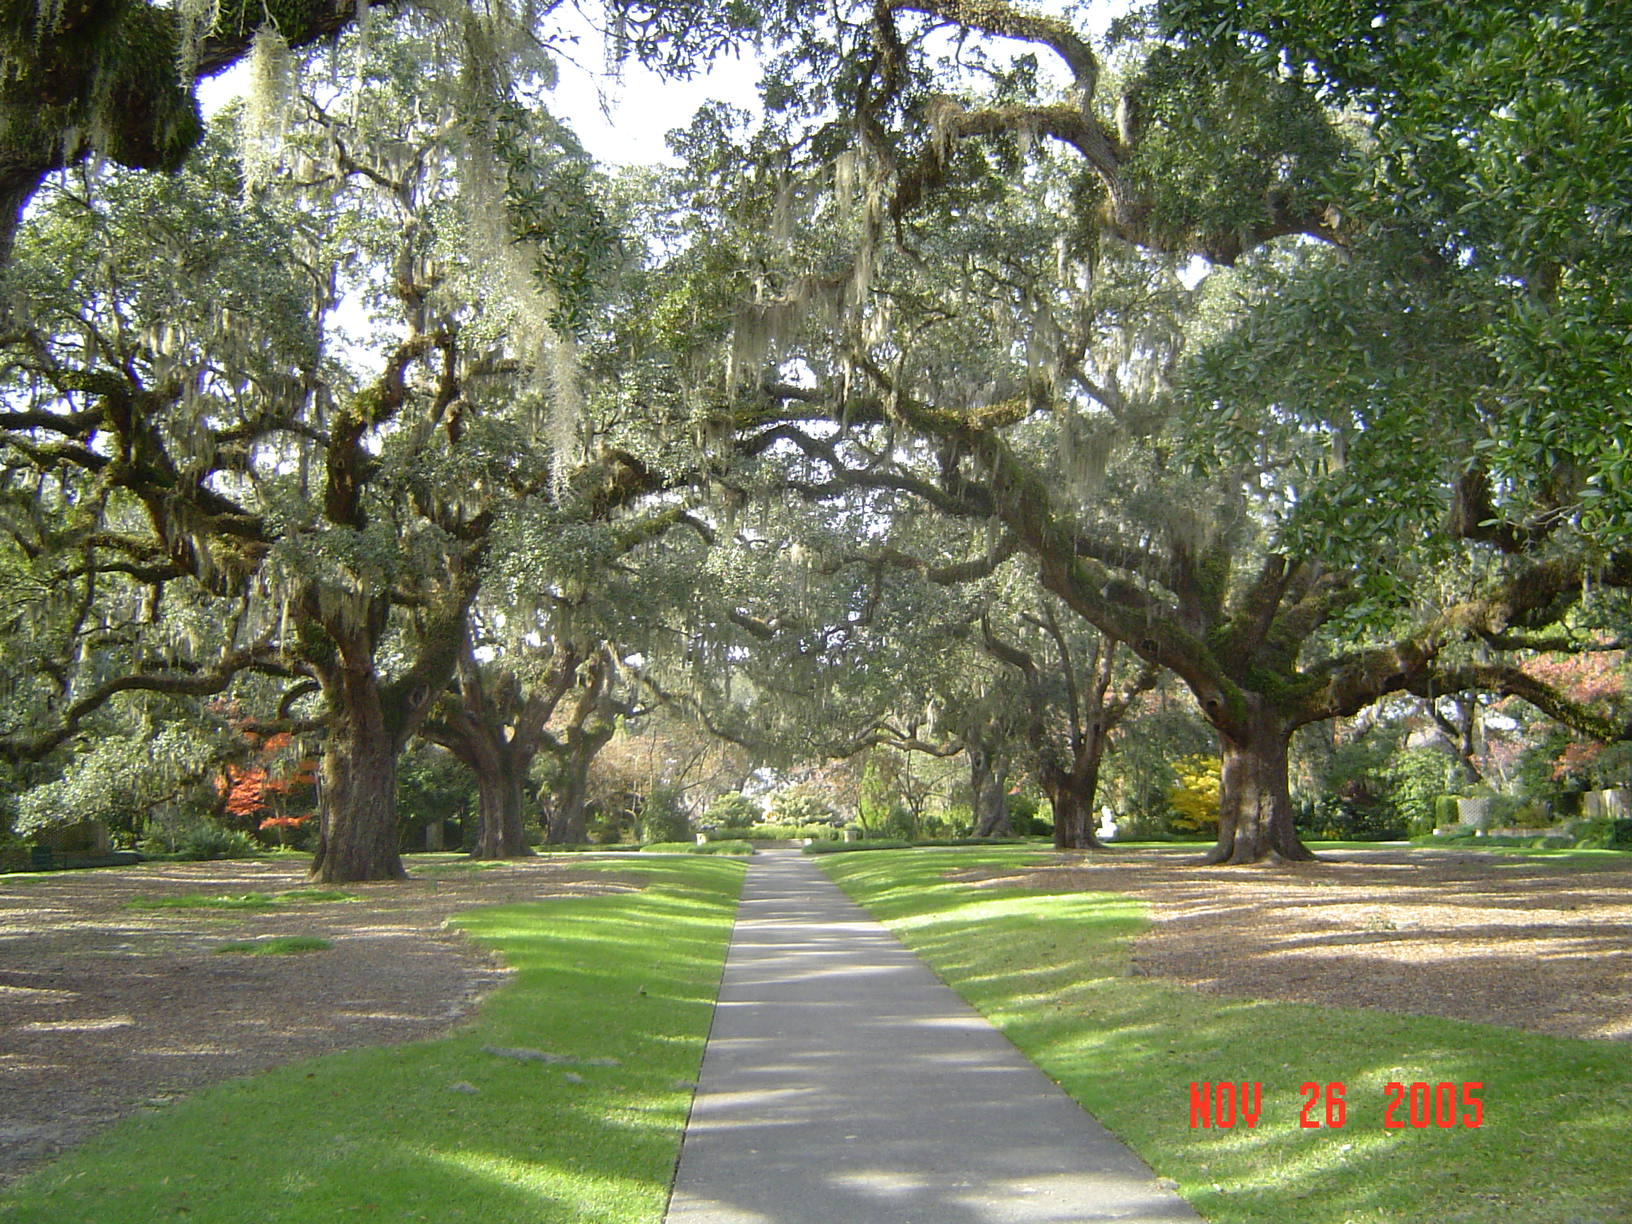 File:LIVE OAK Alley.jpg - Wikimedia Commons